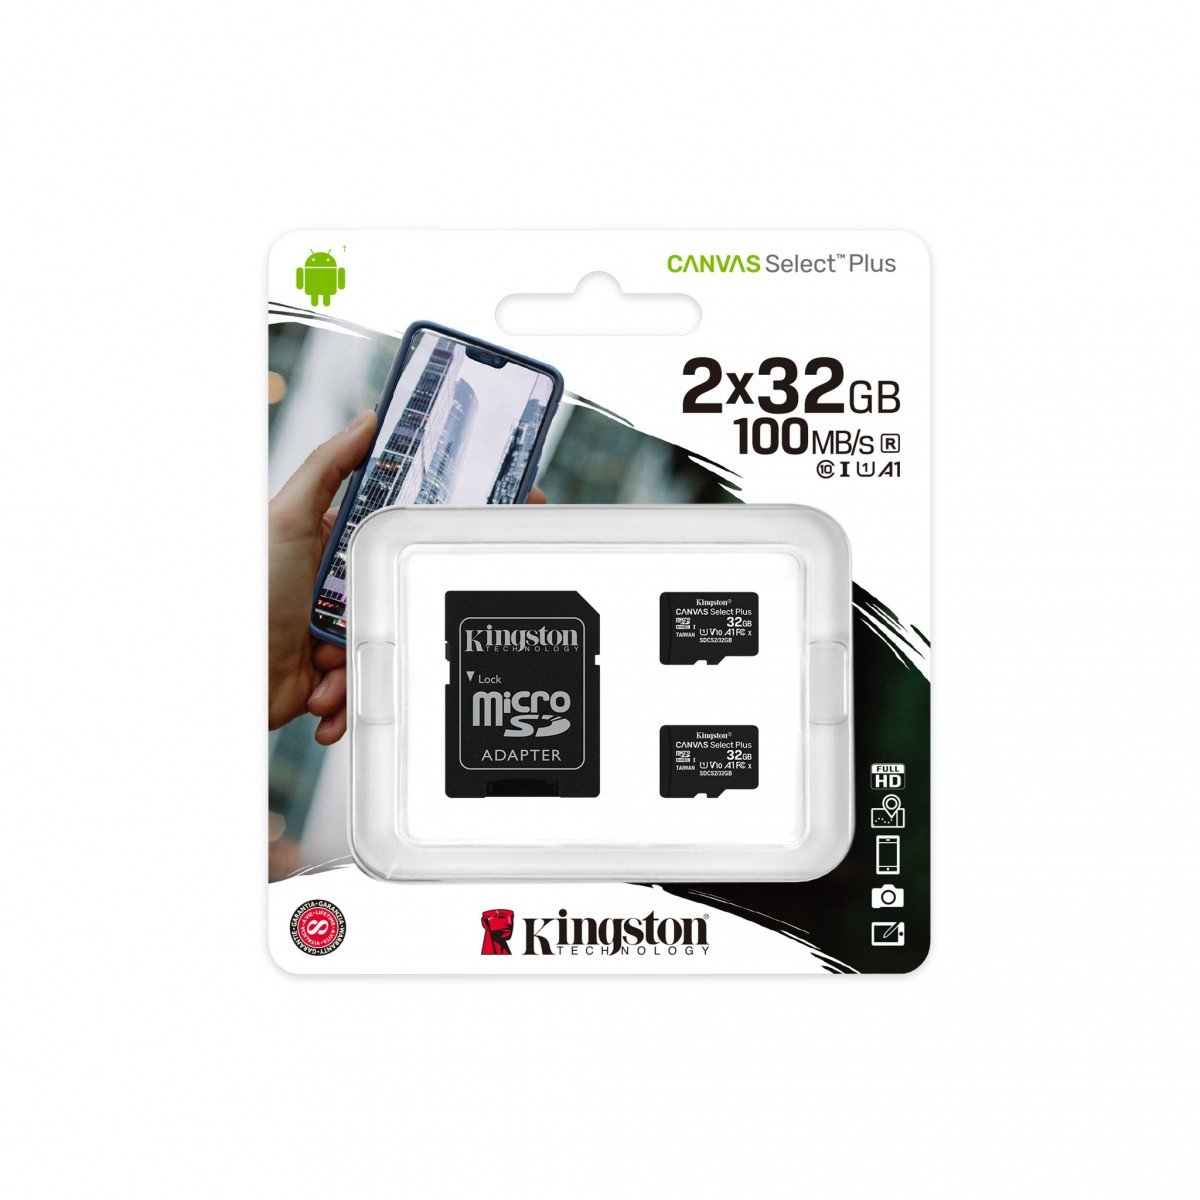 kingston mikro sd 32gb sdcs2 32gb 2p1a 2kom 2347_.jpg